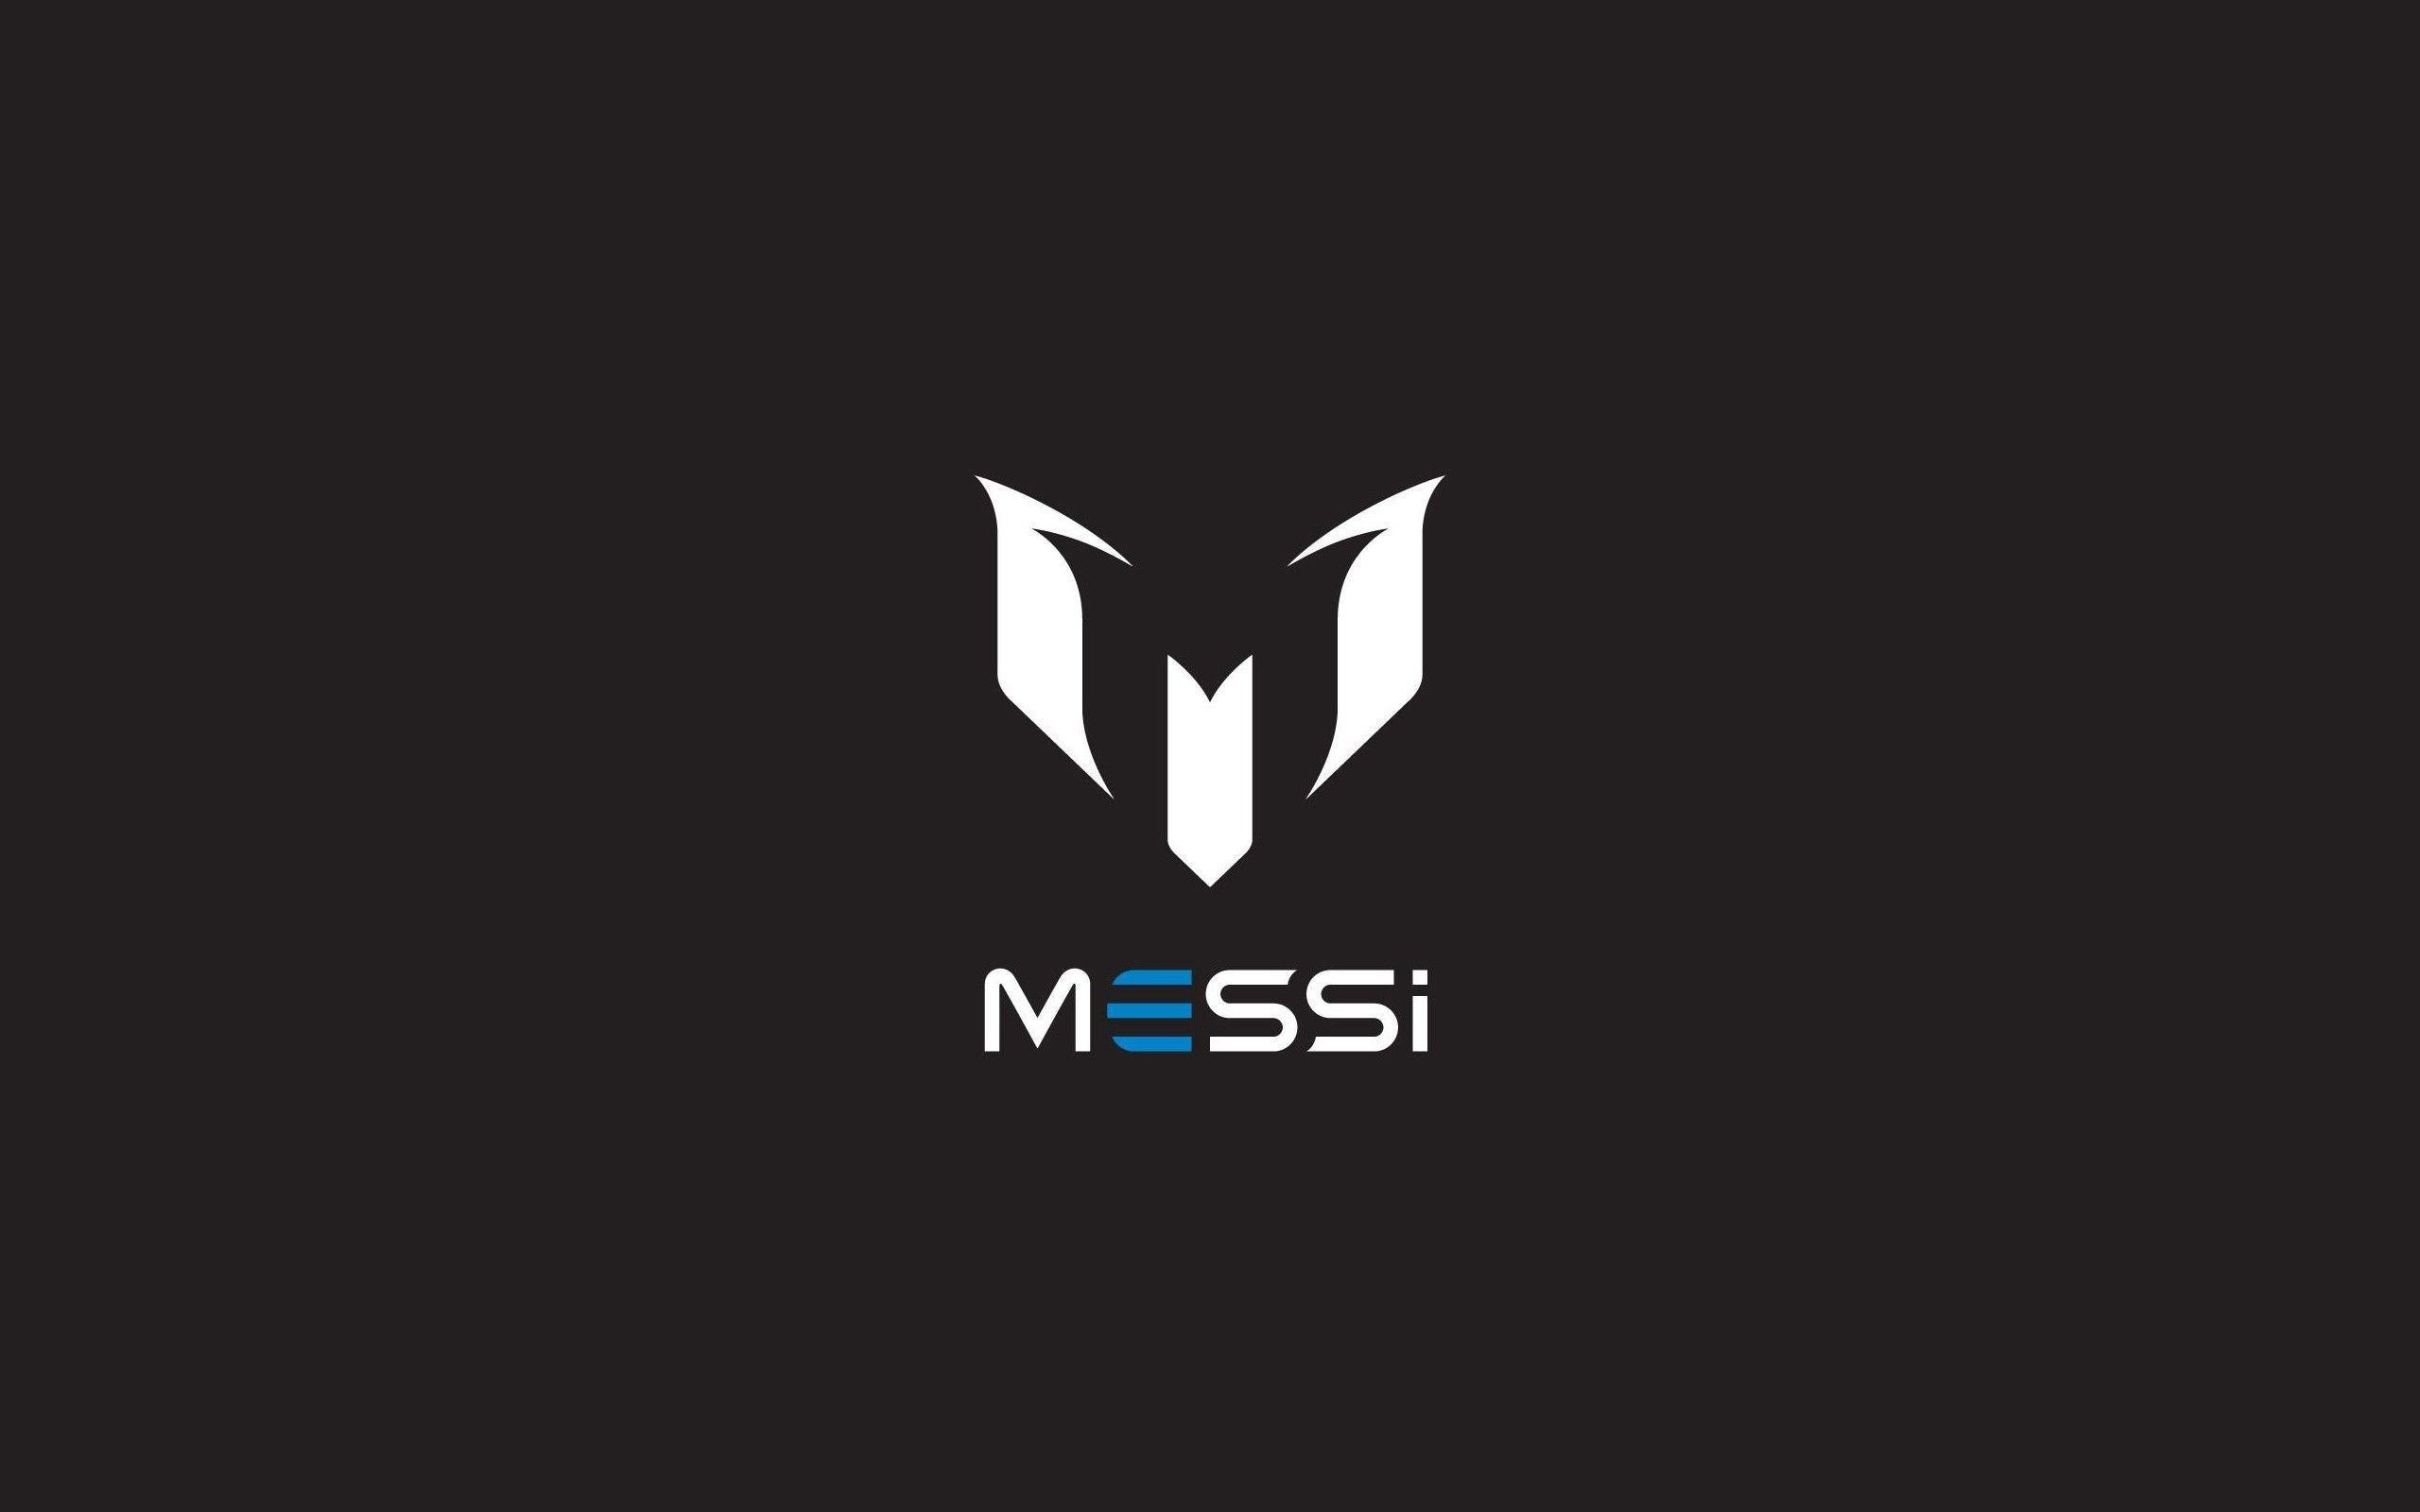 Popular Wallpaper Home Screen Adidas - 737269-best-messi-logo-wallpapers-2560x1600-for-ipad-2  You Should Have_94747.jpg